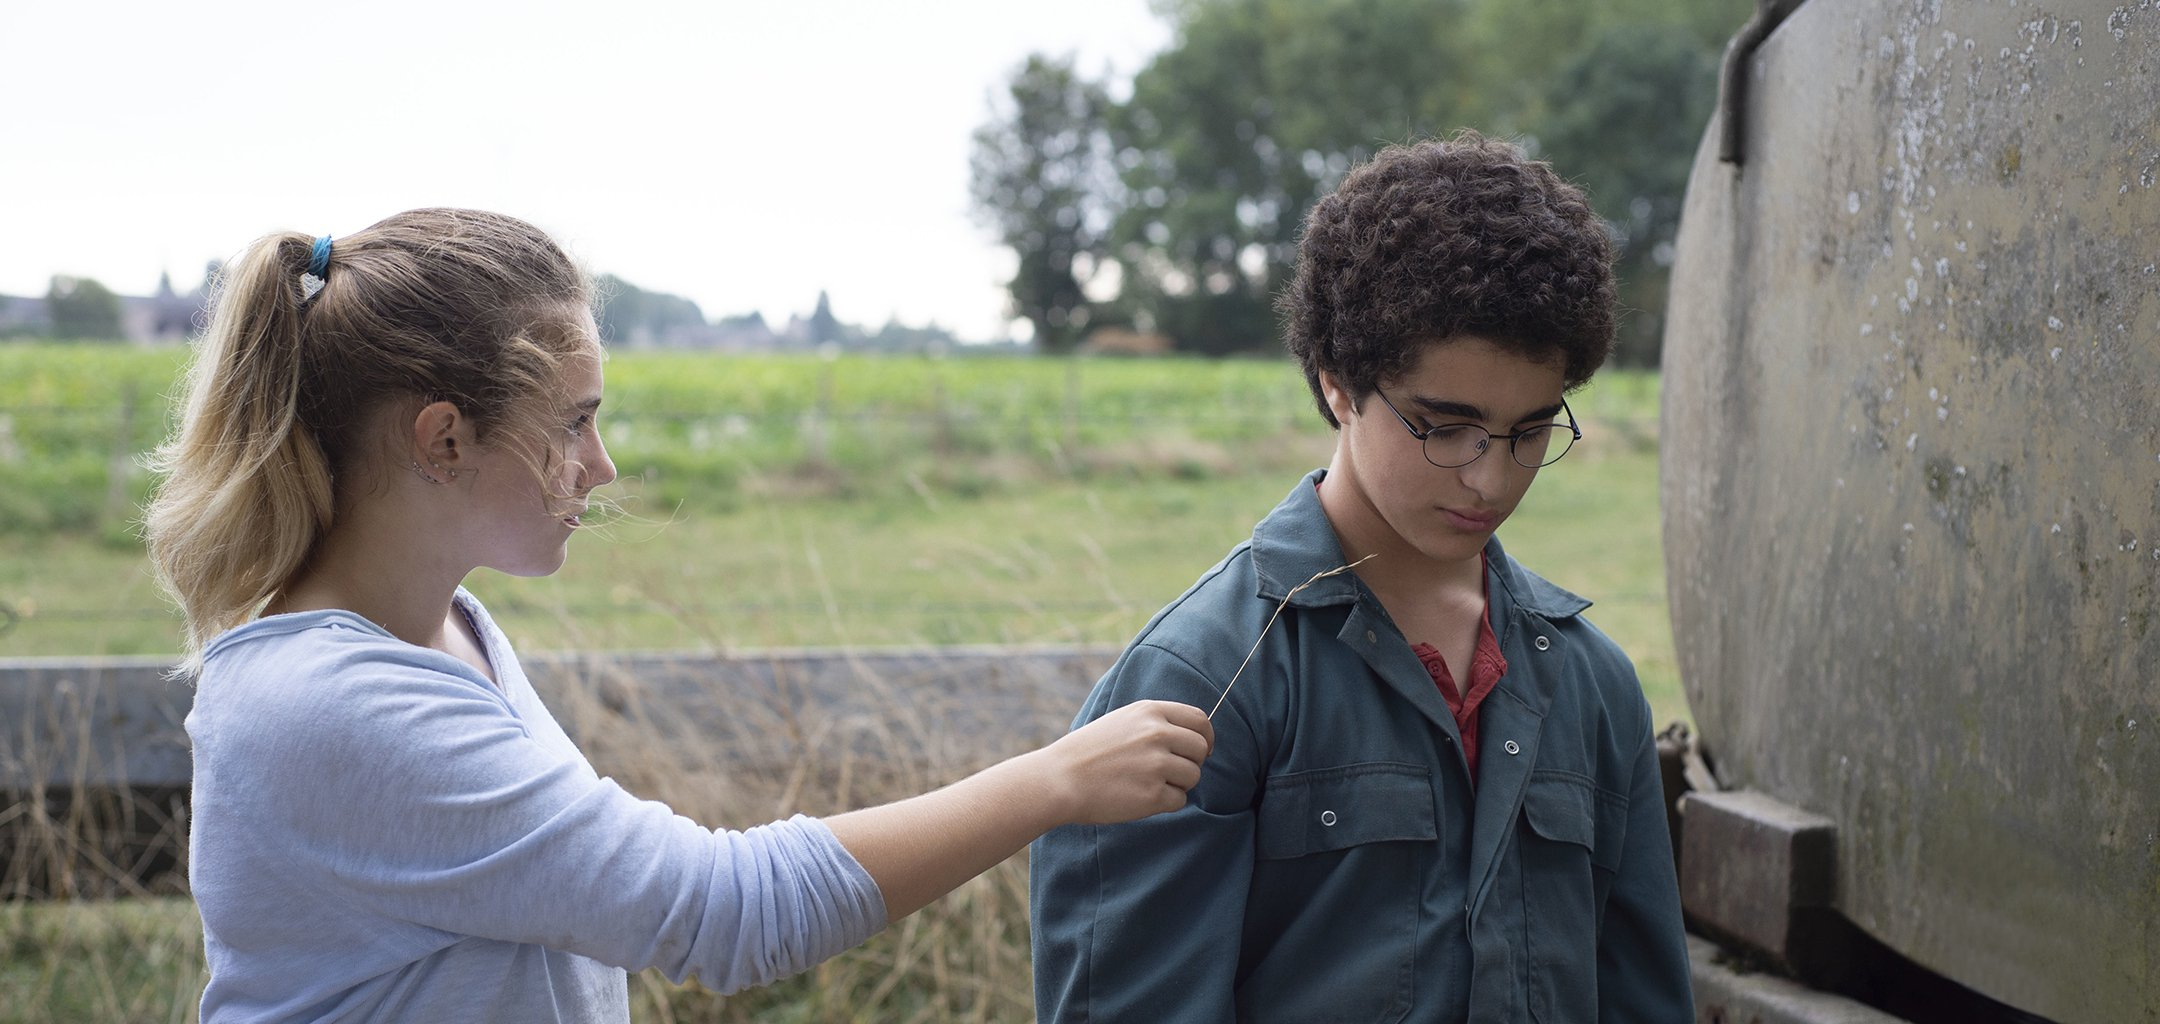 Idir Ben Addi and Victoria Bluck in a still from Young Ahmed (2019)